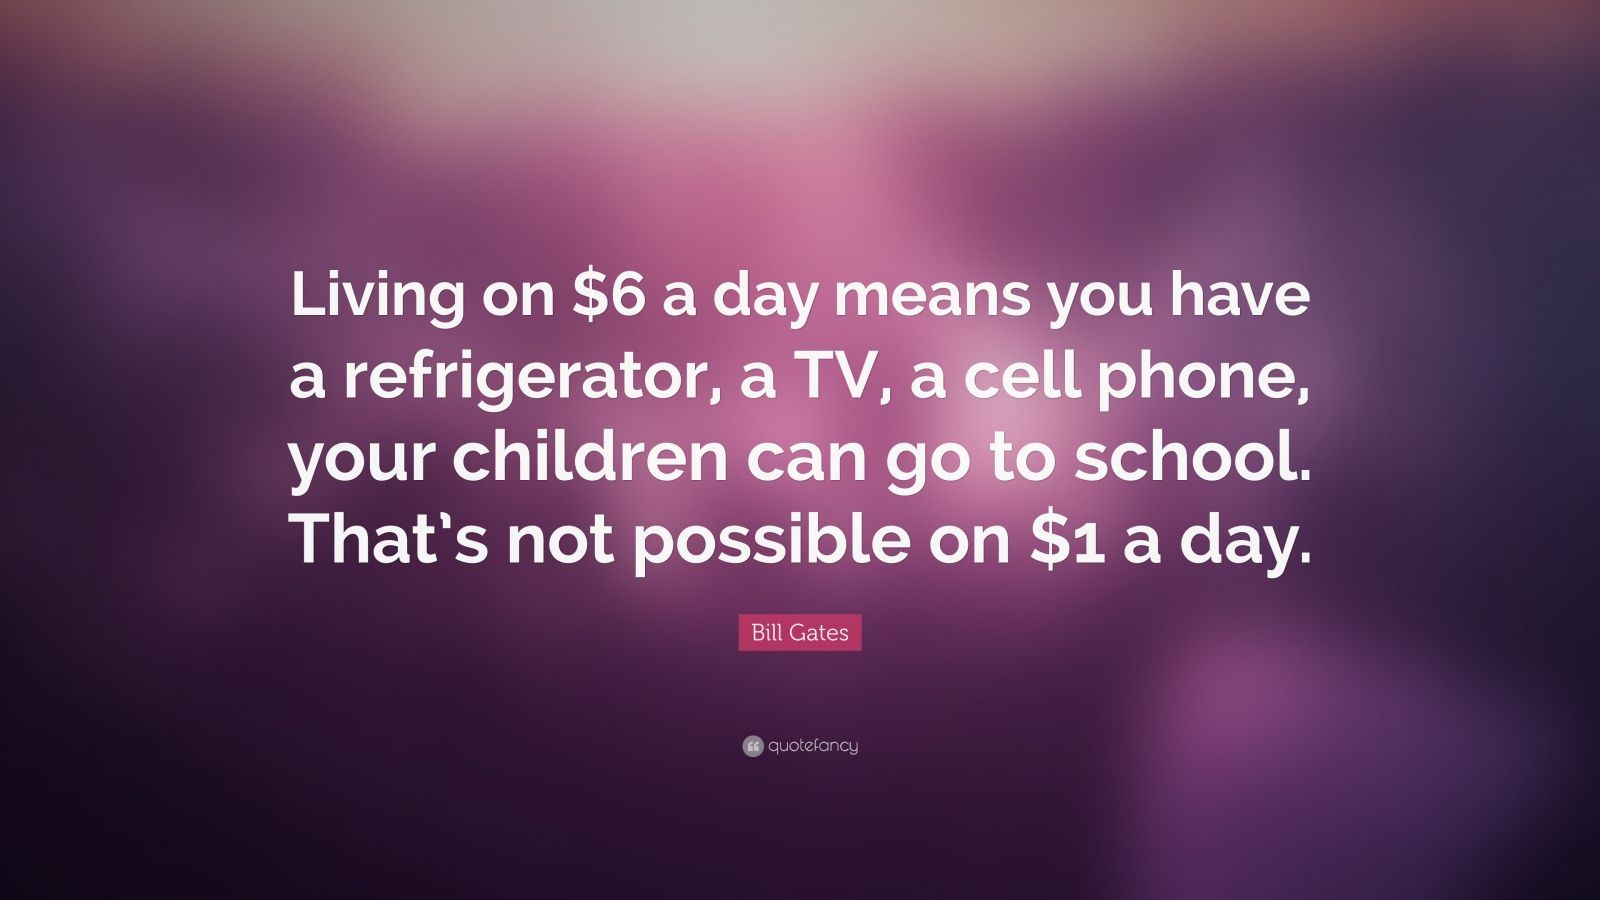 "Bill Gates Quote: ""Living on $6 a day means you have a refrigerator, a TV, a cell phone, your children can go to school. That's not possible on $1 a day."""